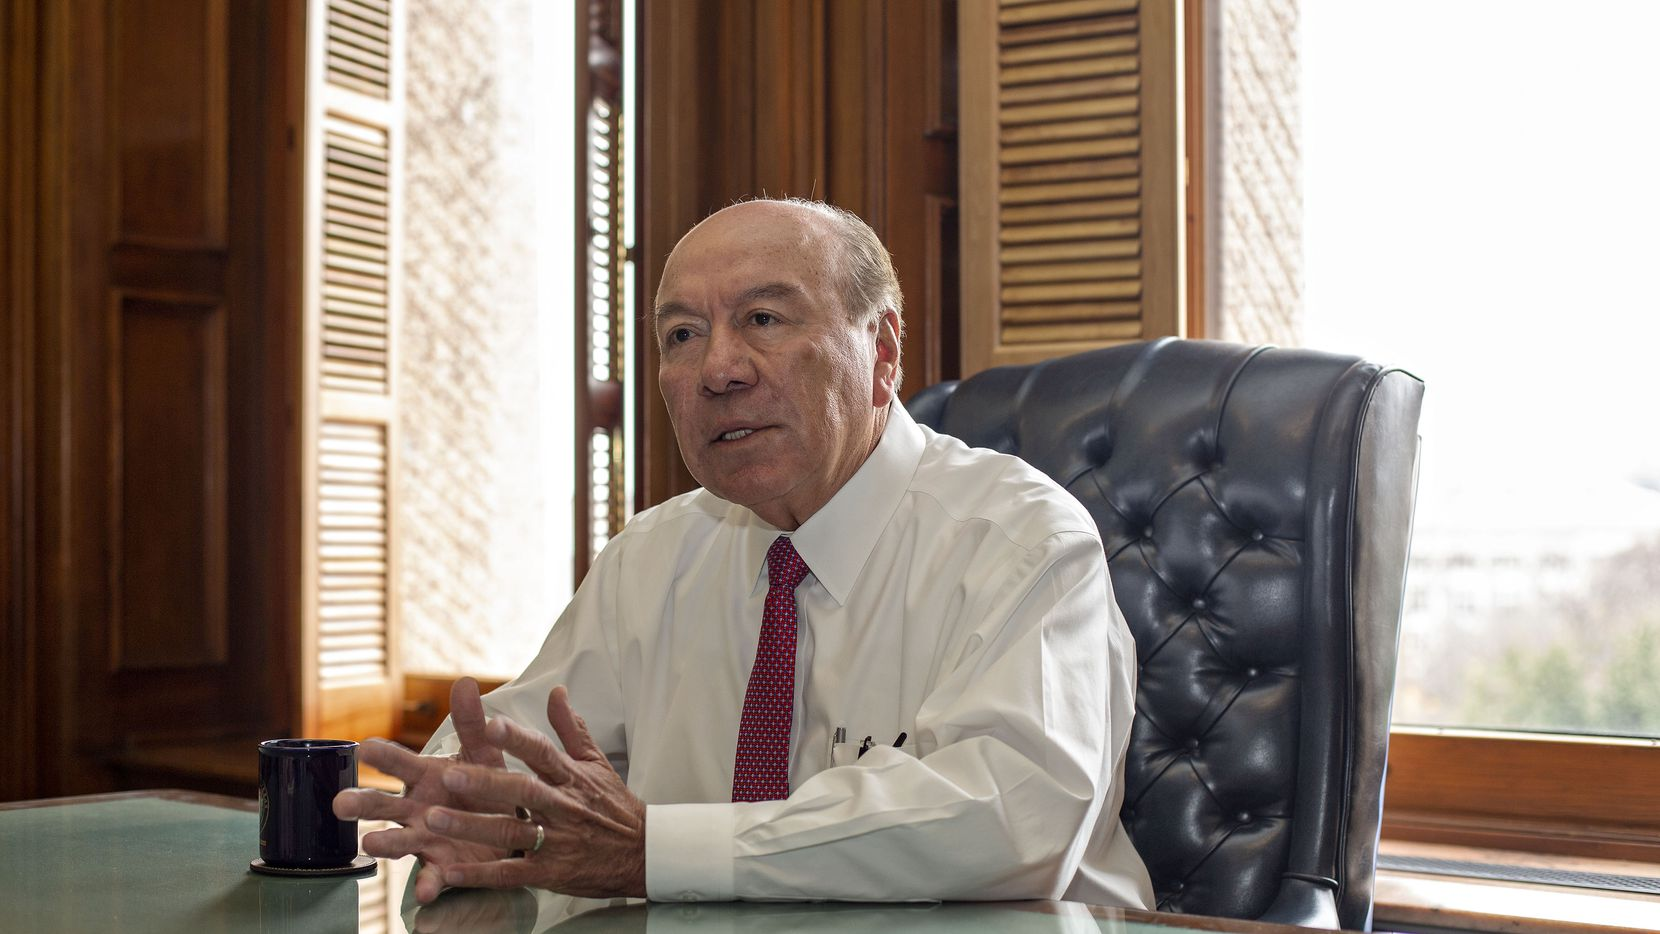 """Sen. Juan """"Chuy"""" Hinojosa, D-McAllen, shown at his Capitol office in 2019, says he doesn't believe a border wall will work. But somebody has to do something about the crisis at the border, he said Thursday."""